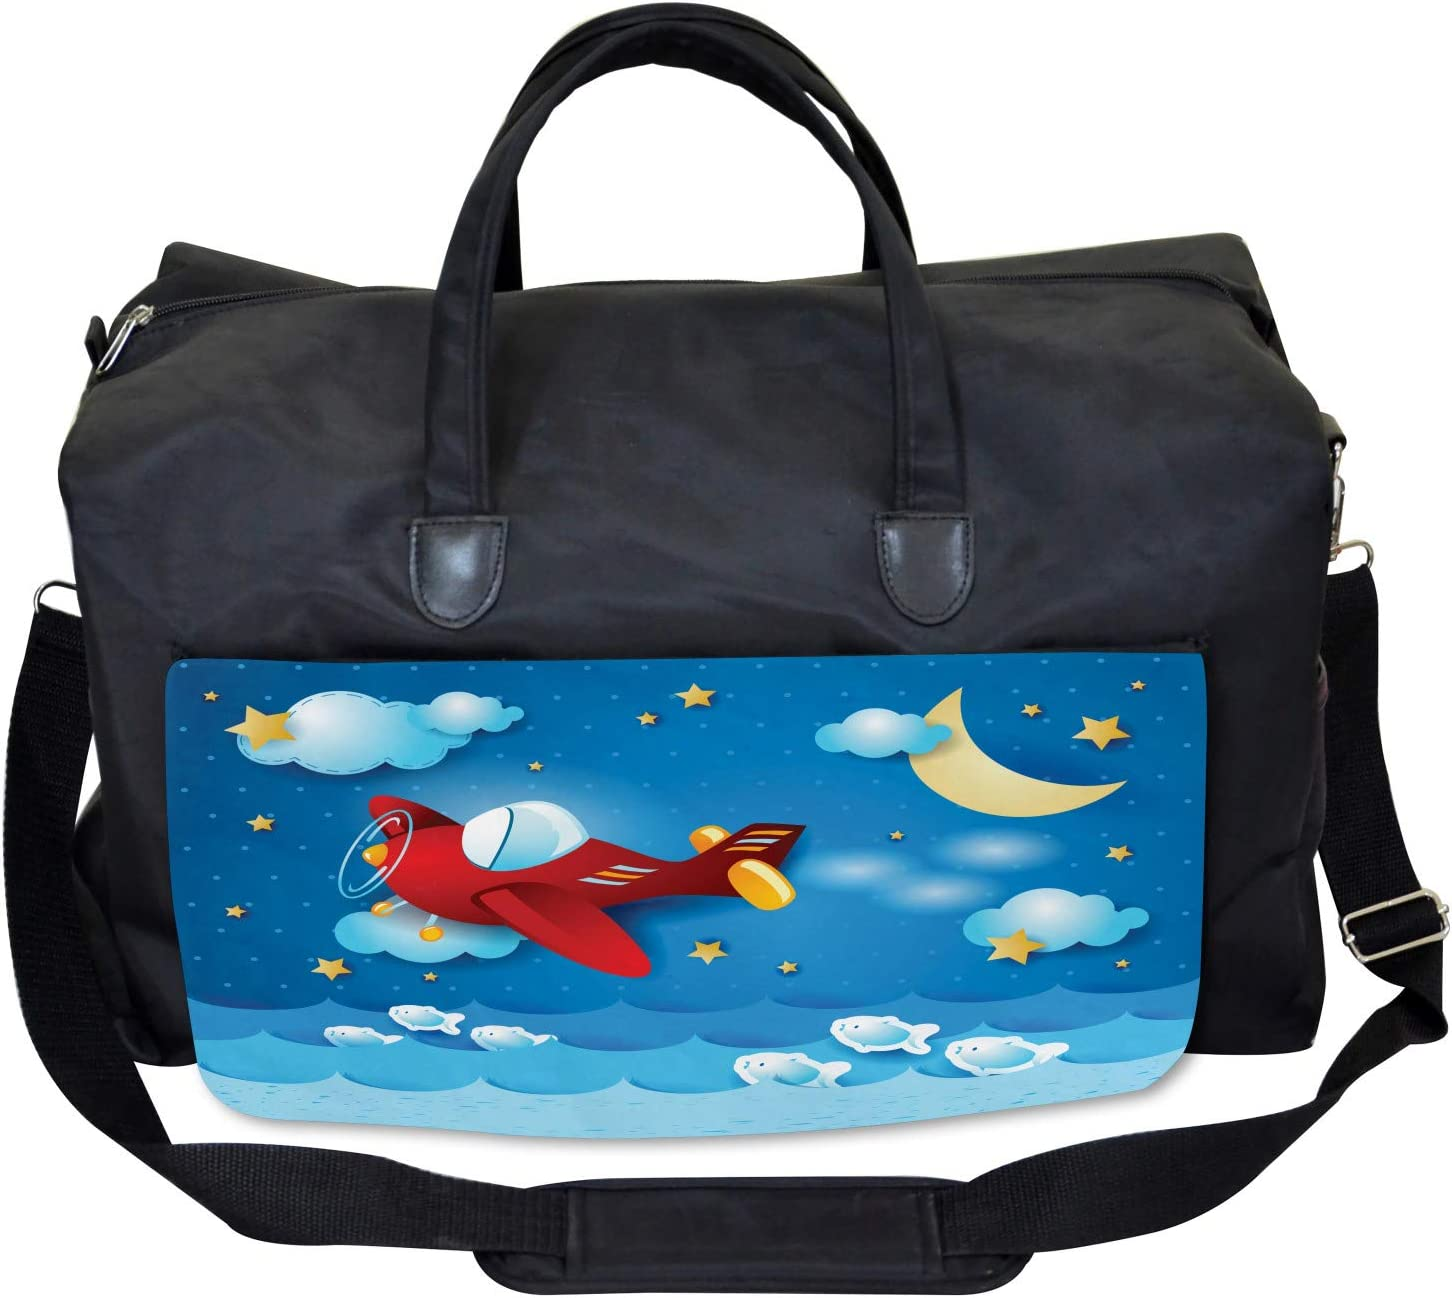 Large Weekender Carry-on Ambesonne Moon Gym Bag The Moon and the Stars